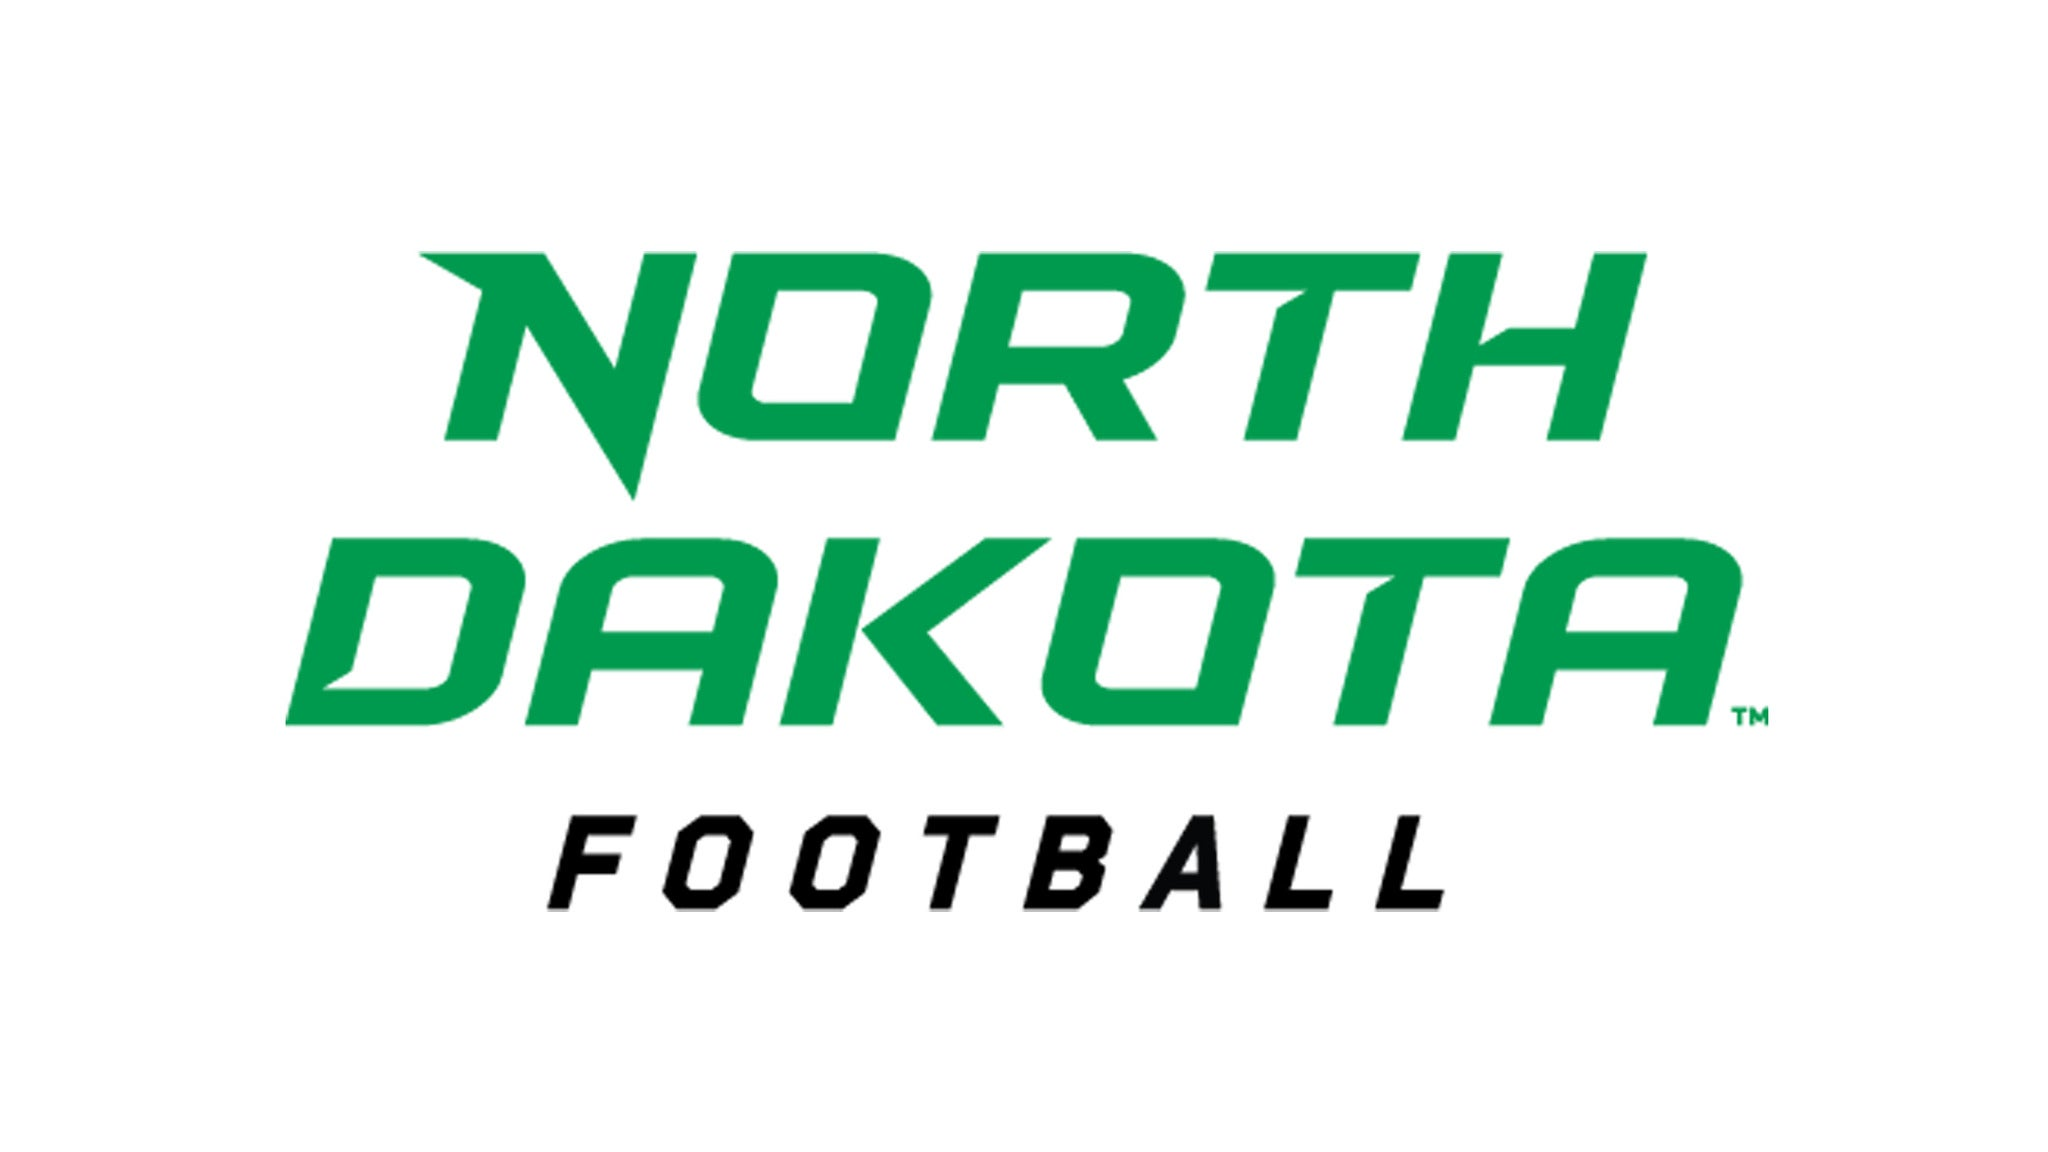 University of North Dakota Football vs. Montana State Football